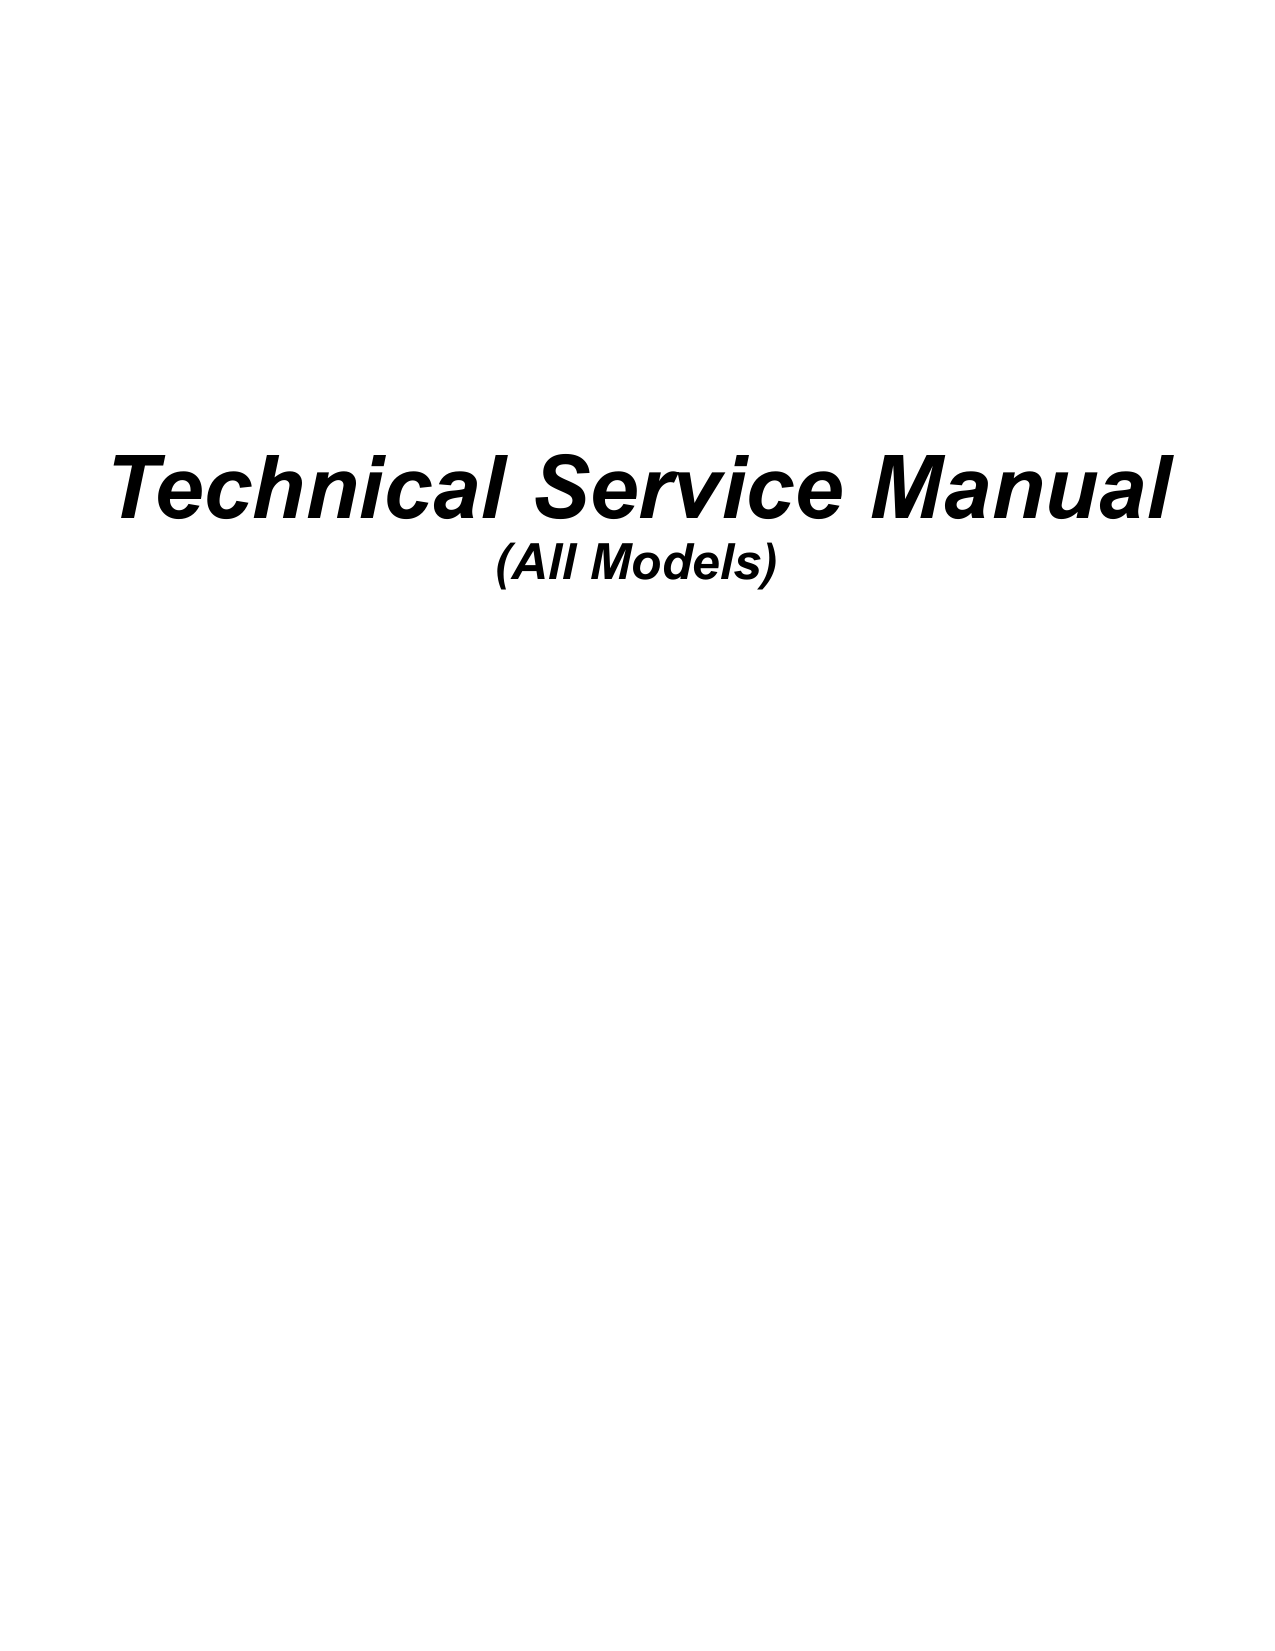 Service_Manual.pdf 0 download free pdf for true gdm 72f freezer manual true gdm 72f wiring diagram at fashall.co